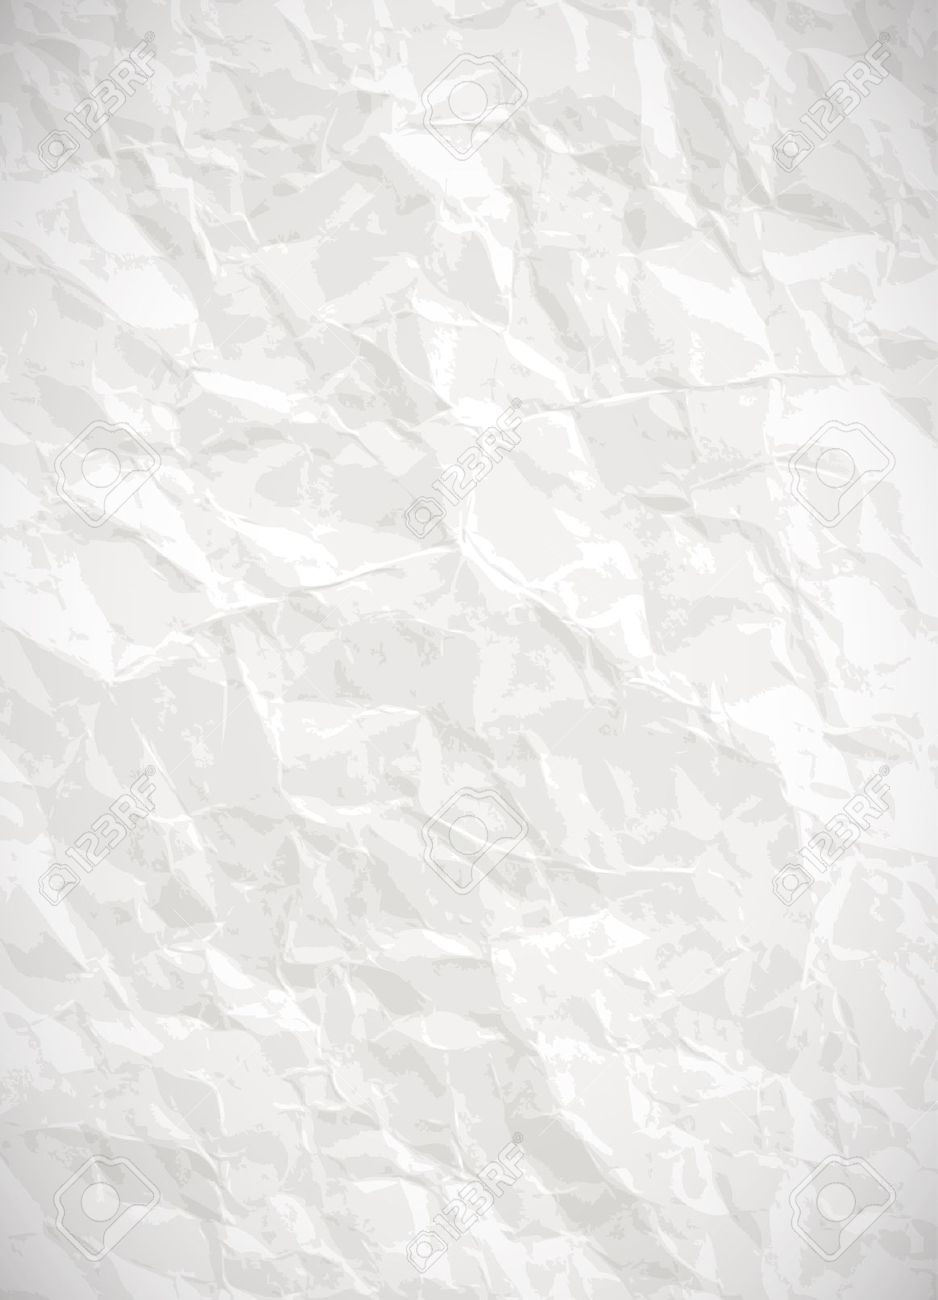 Crinkled paper clipart background.